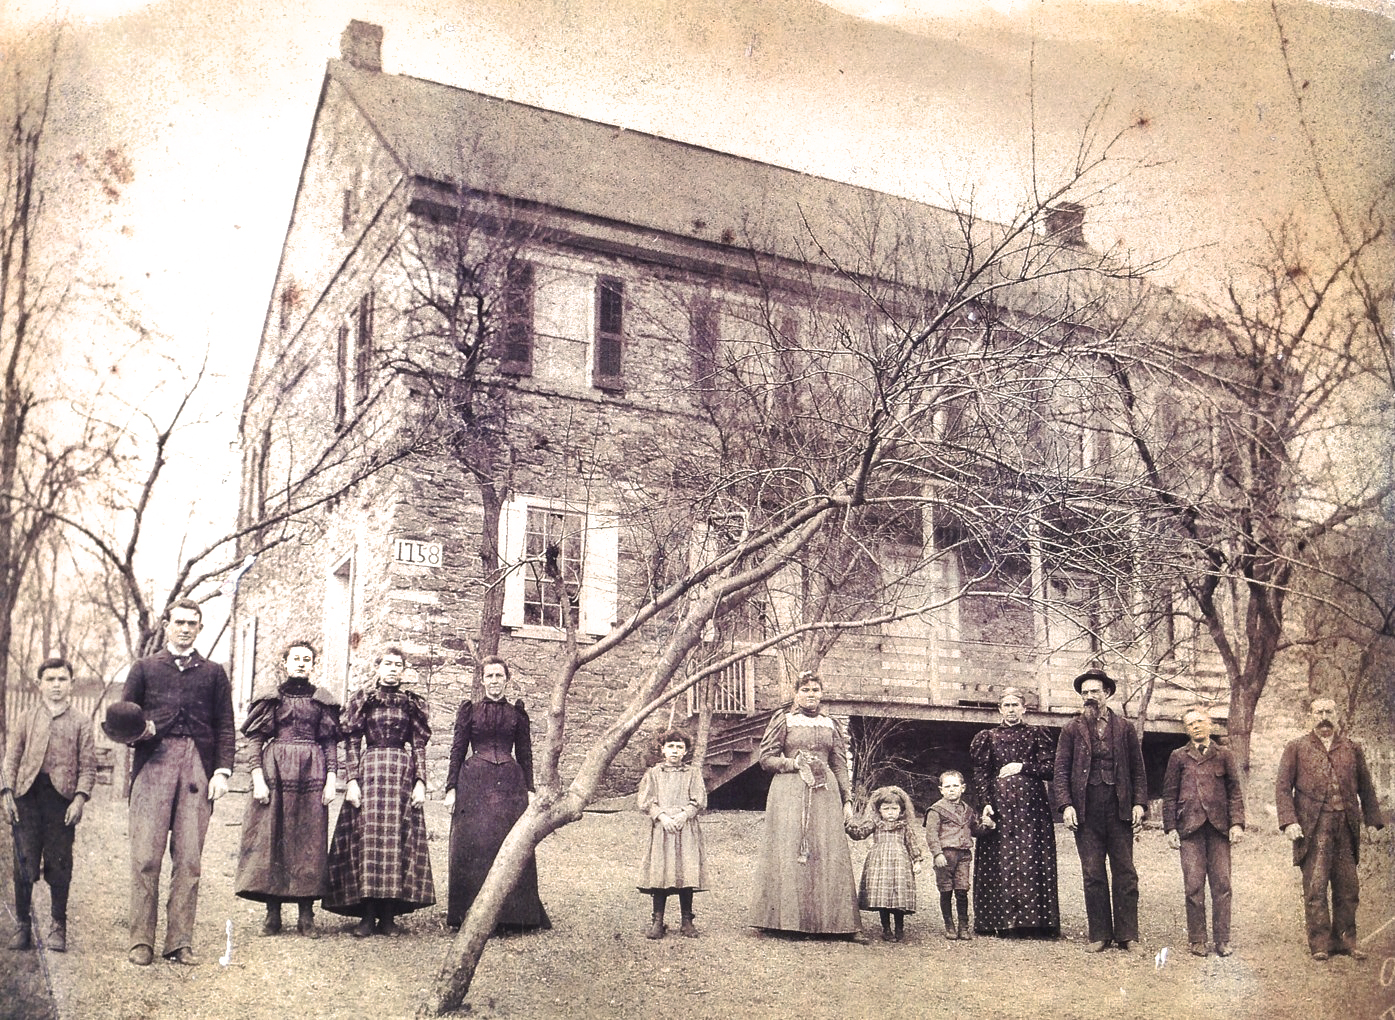 02 Historic Photo of Existing House.jpg